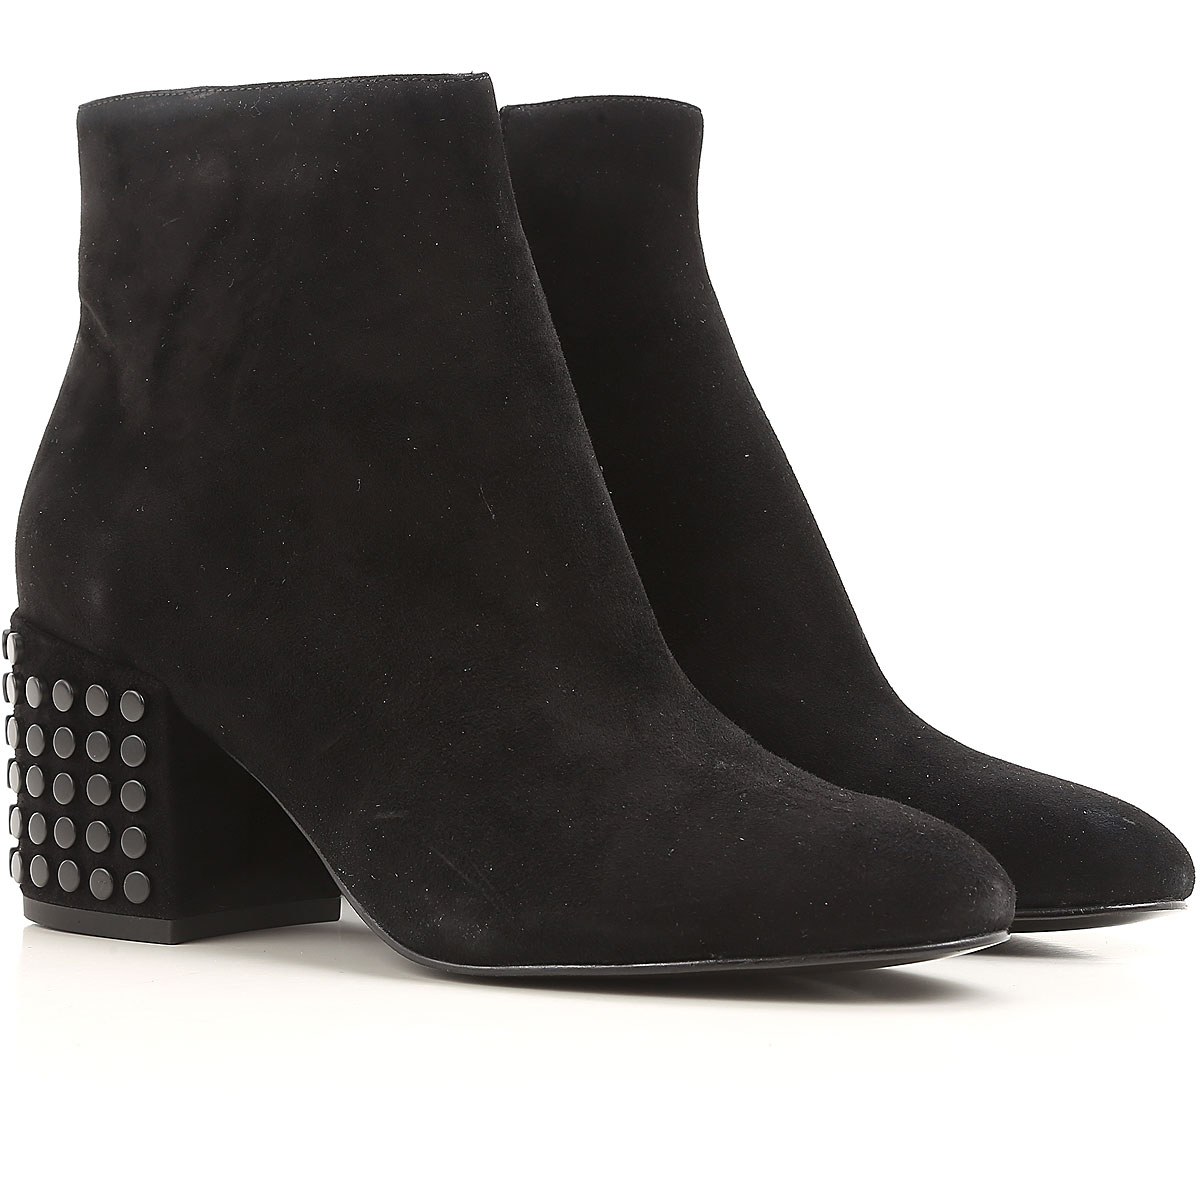 Kendall Kylie Boots for Women, Booties On Sale in Outlet, Black, suede, 2019, 6 7